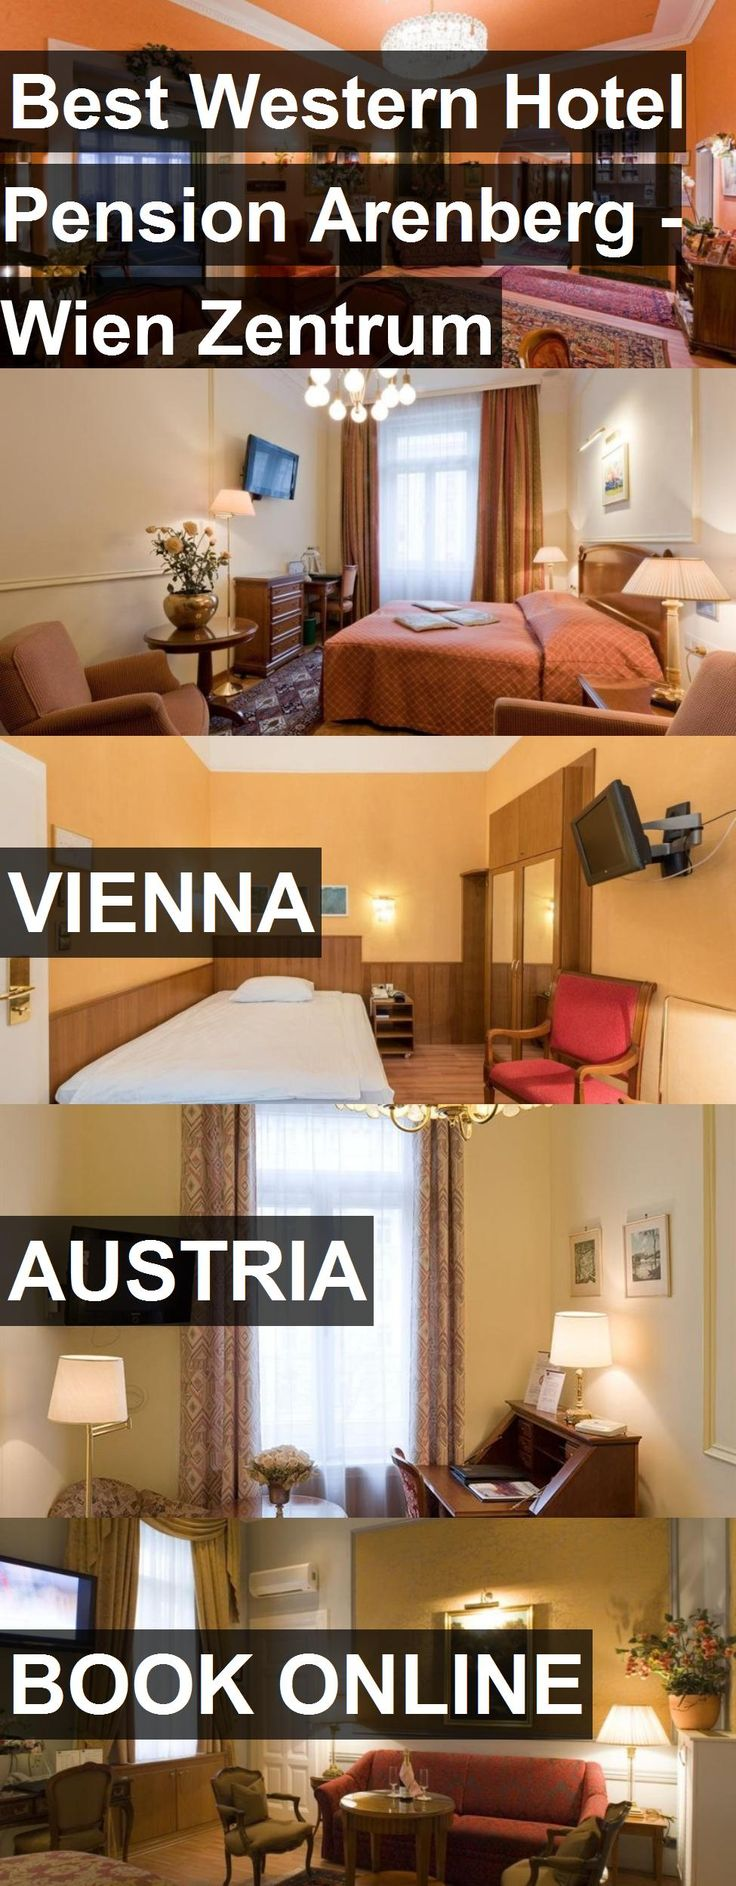 Hotel Best Western Hotel Pension Arenberg - Wien Zentrum in Vienna, Austria. For more information, photos, reviews and best prices please follow the link. #Austria #Vienna #BestWesternHotelPensionArenberg-WienZentrum #hotel #travel #vacation